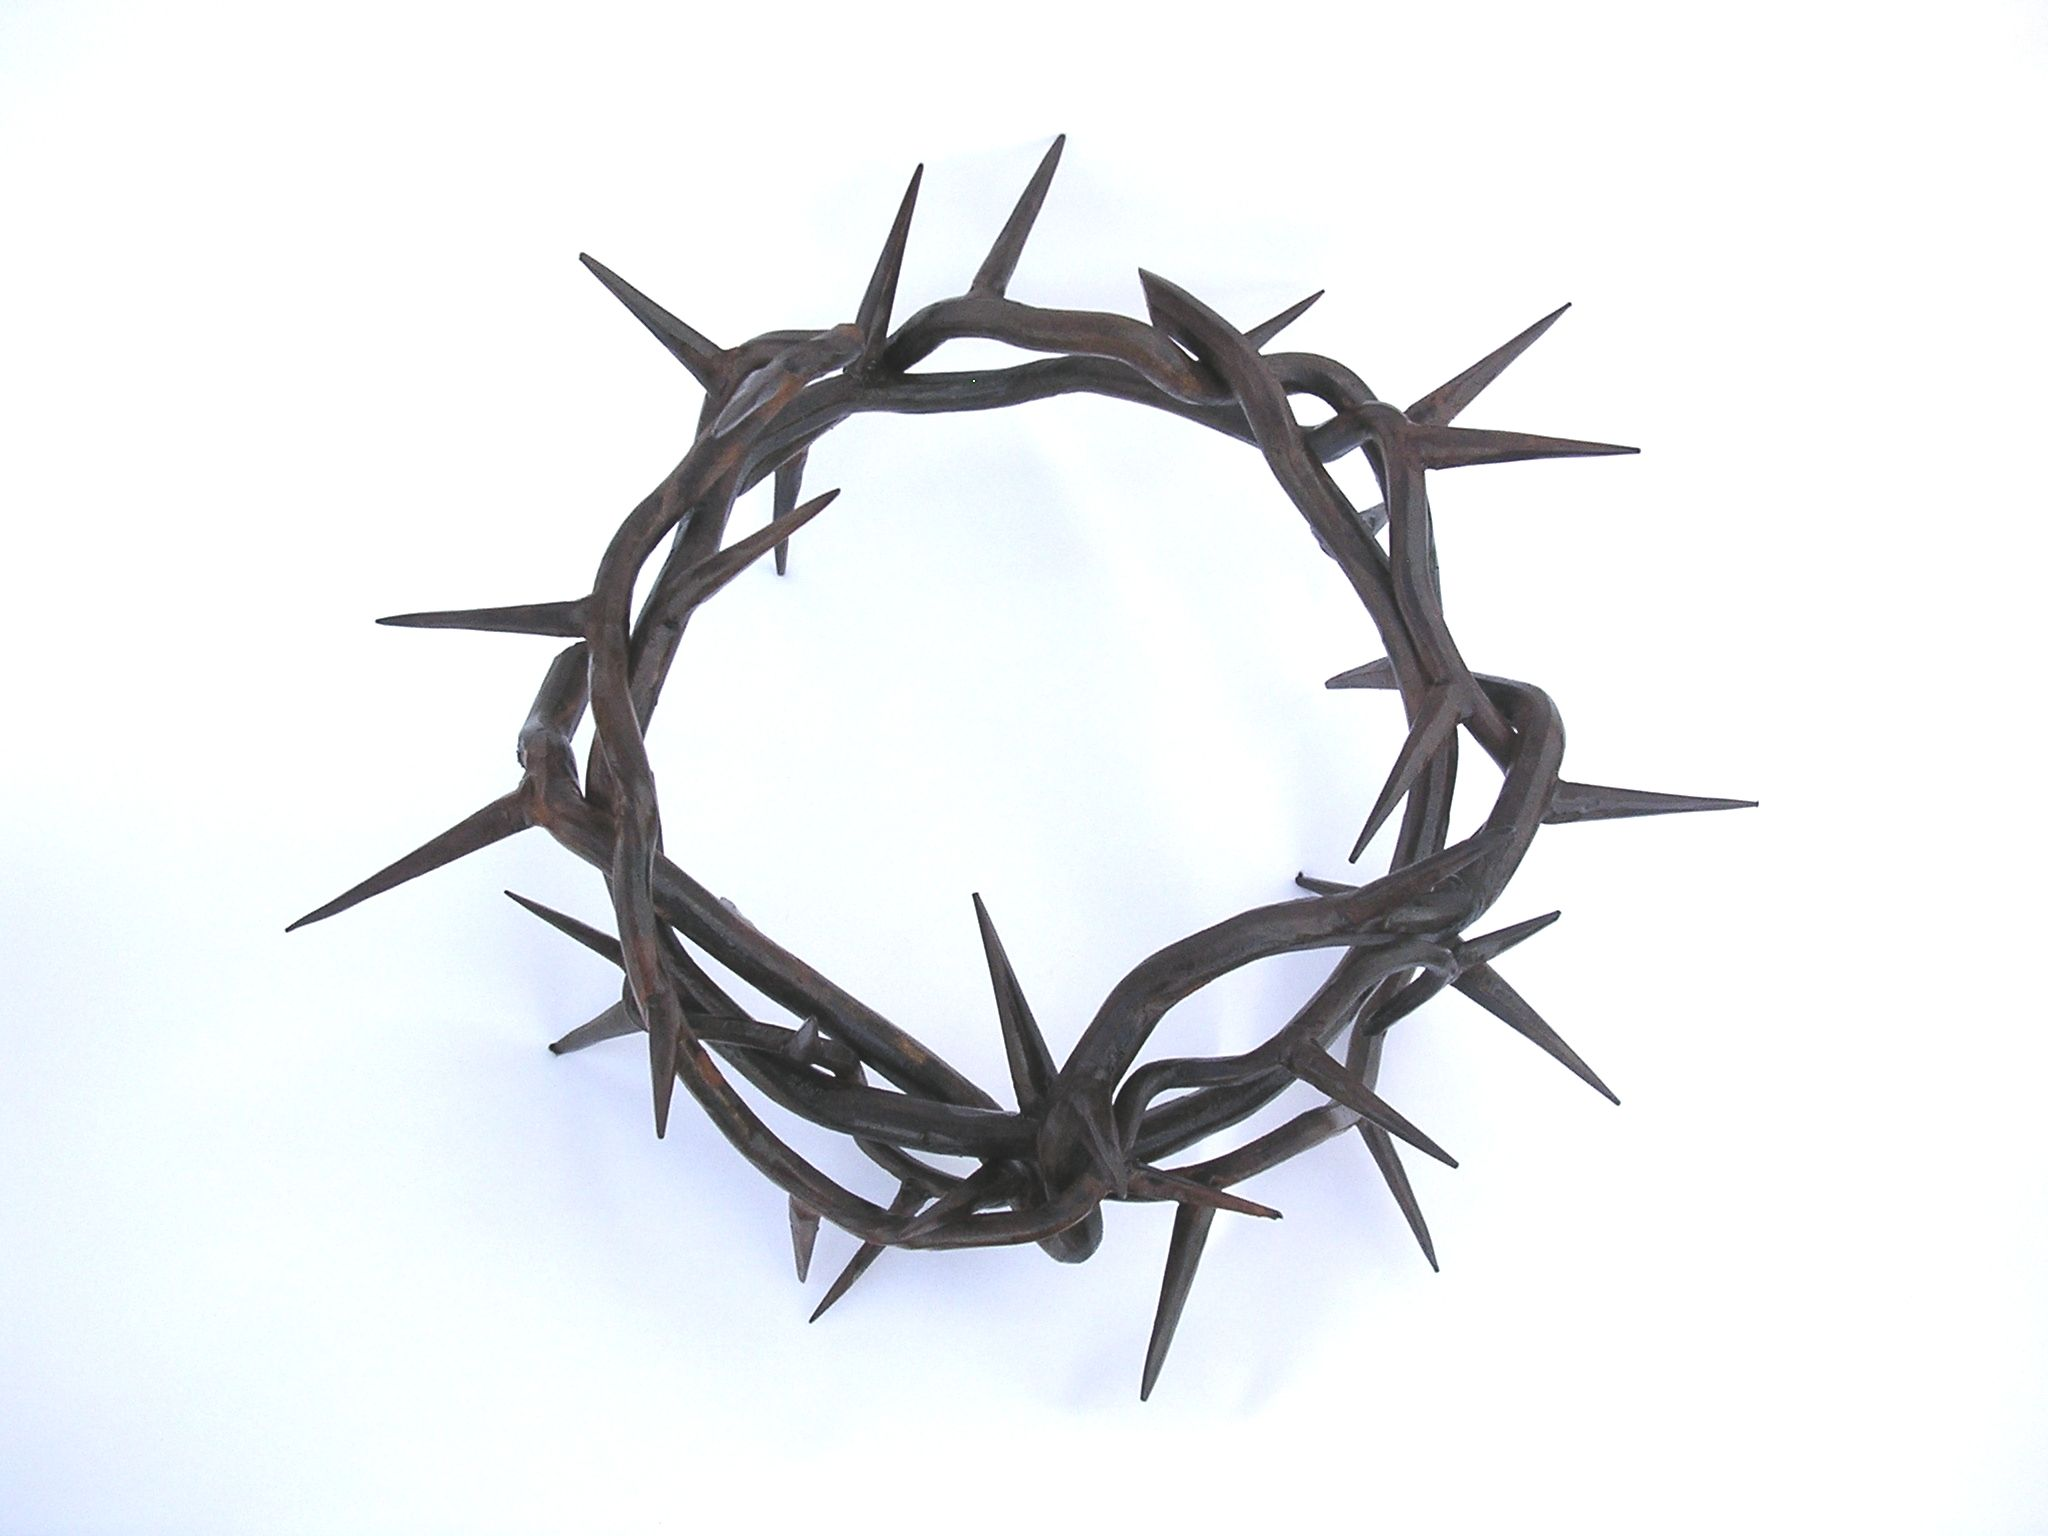 2048x1536 Crown Of Thorns SIGNS Pinterest Tattoo Tatting And